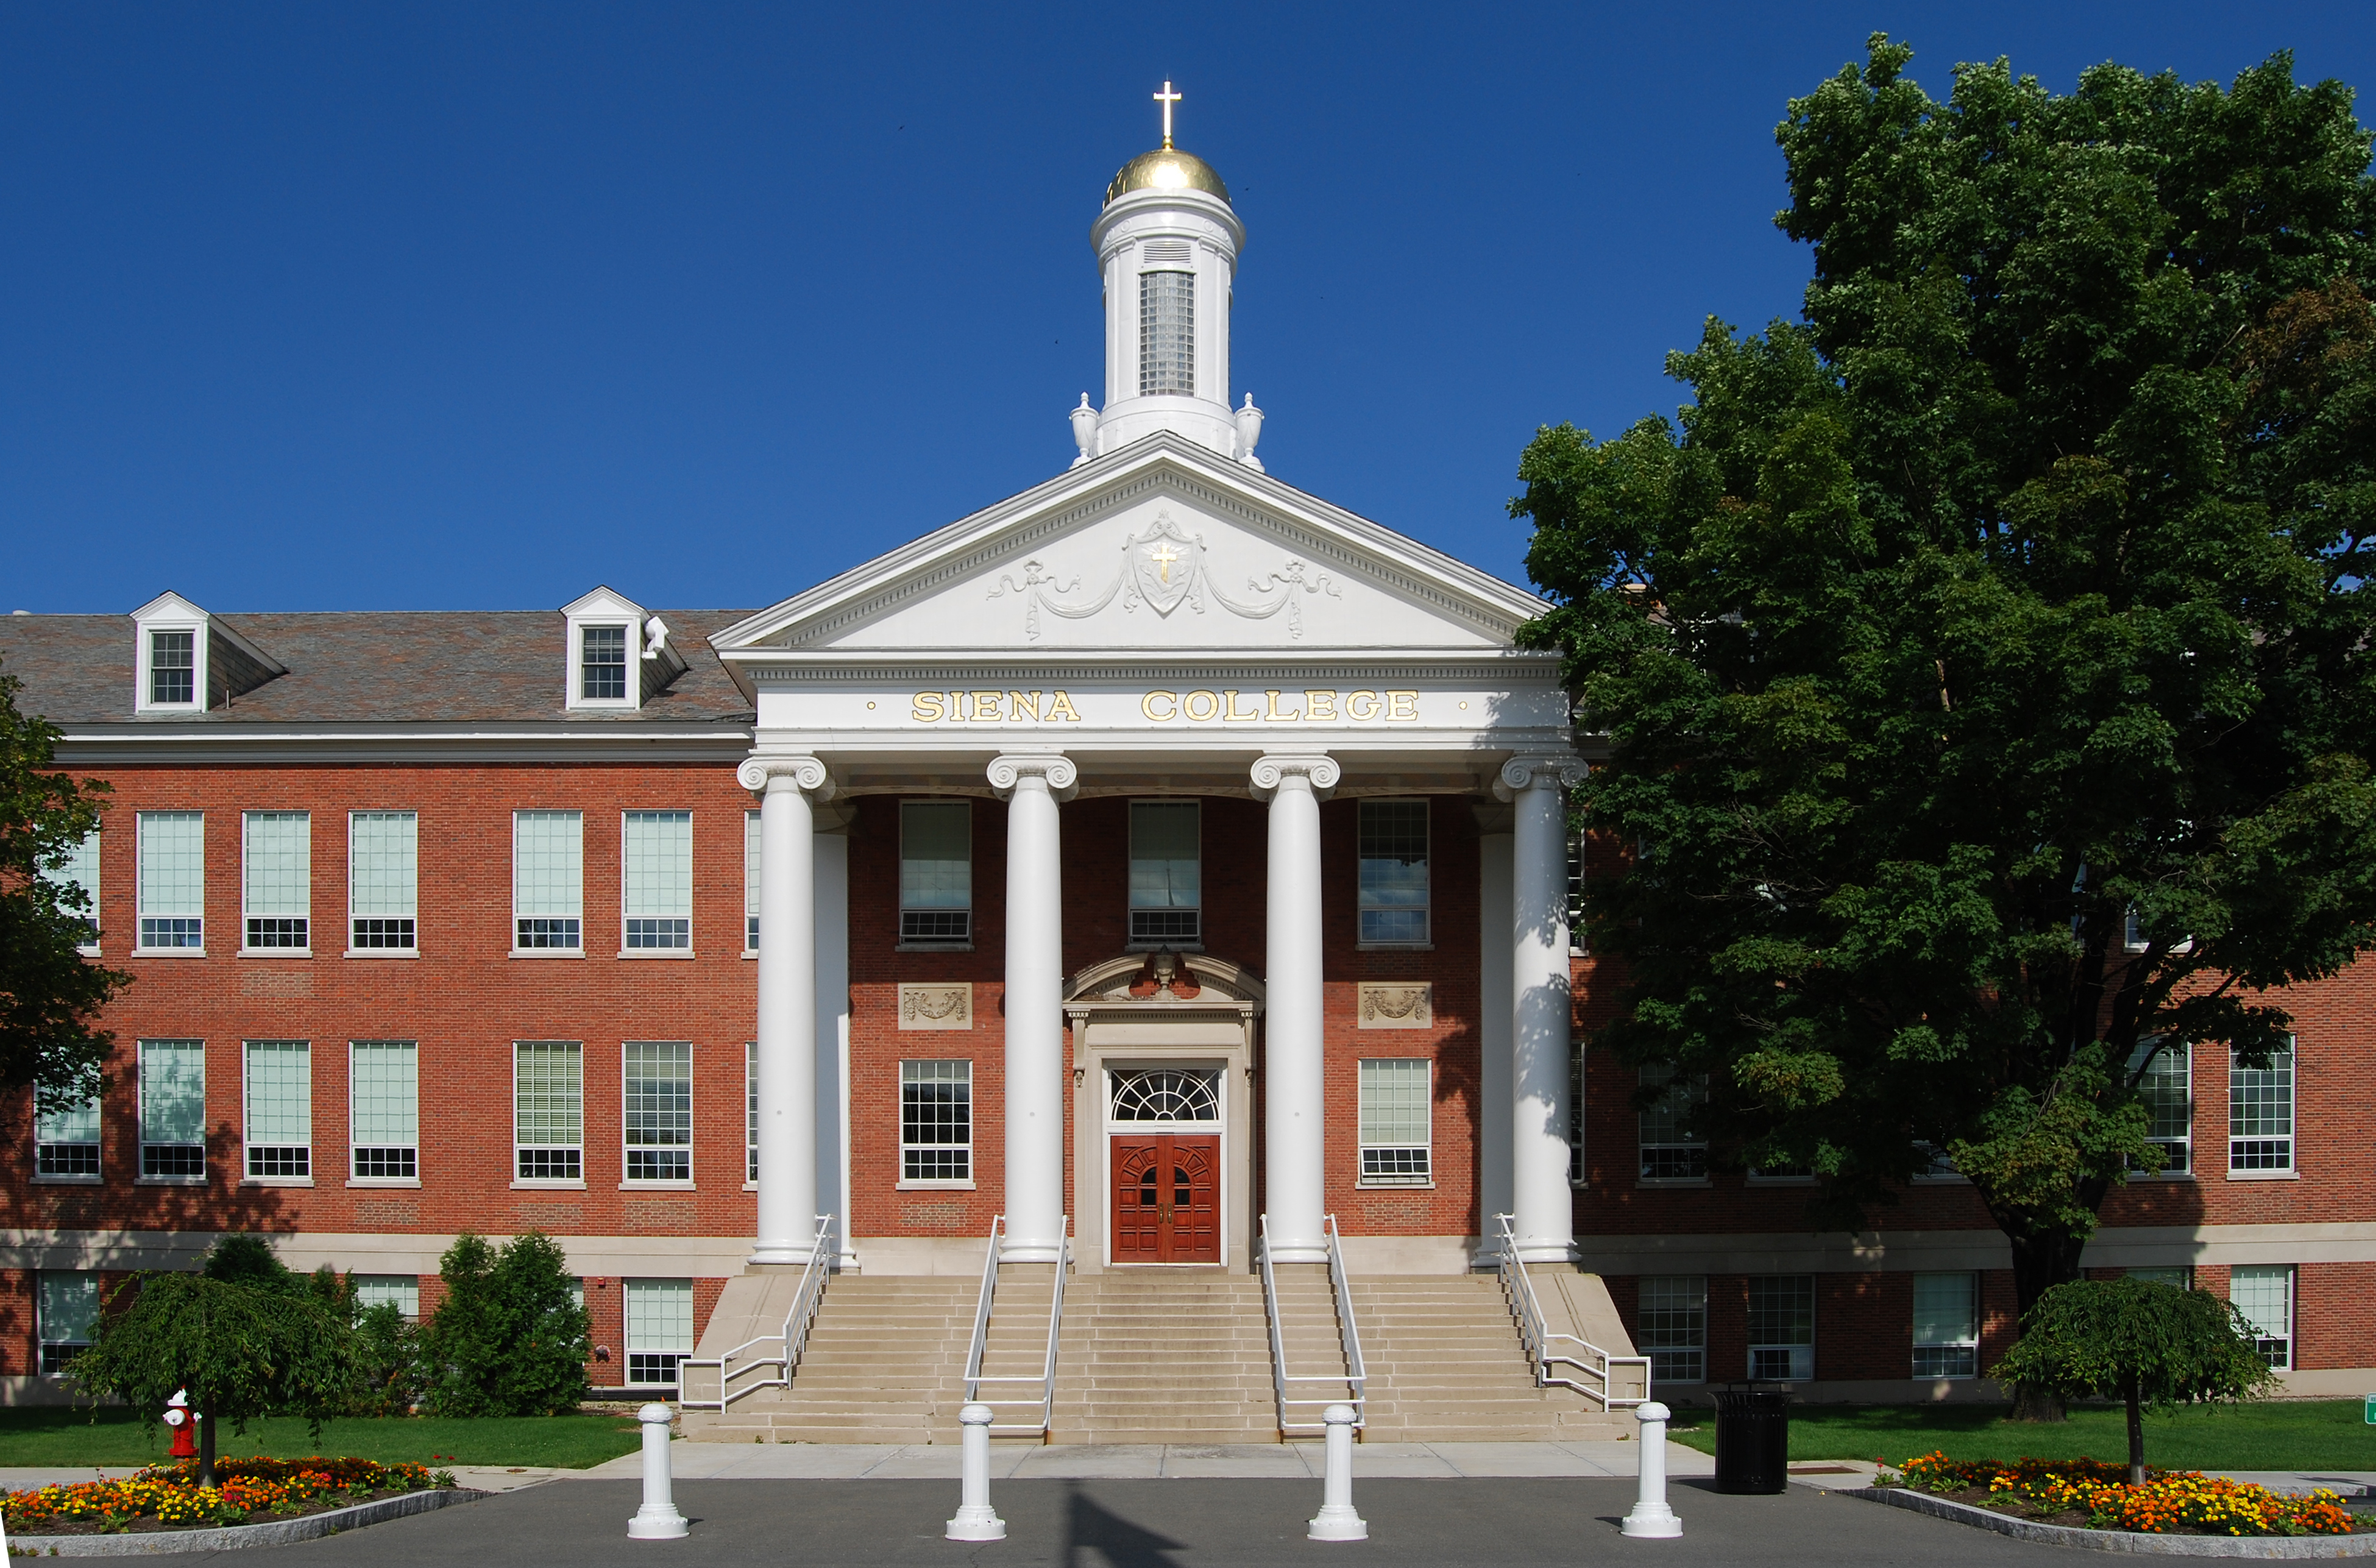 About: Siena College